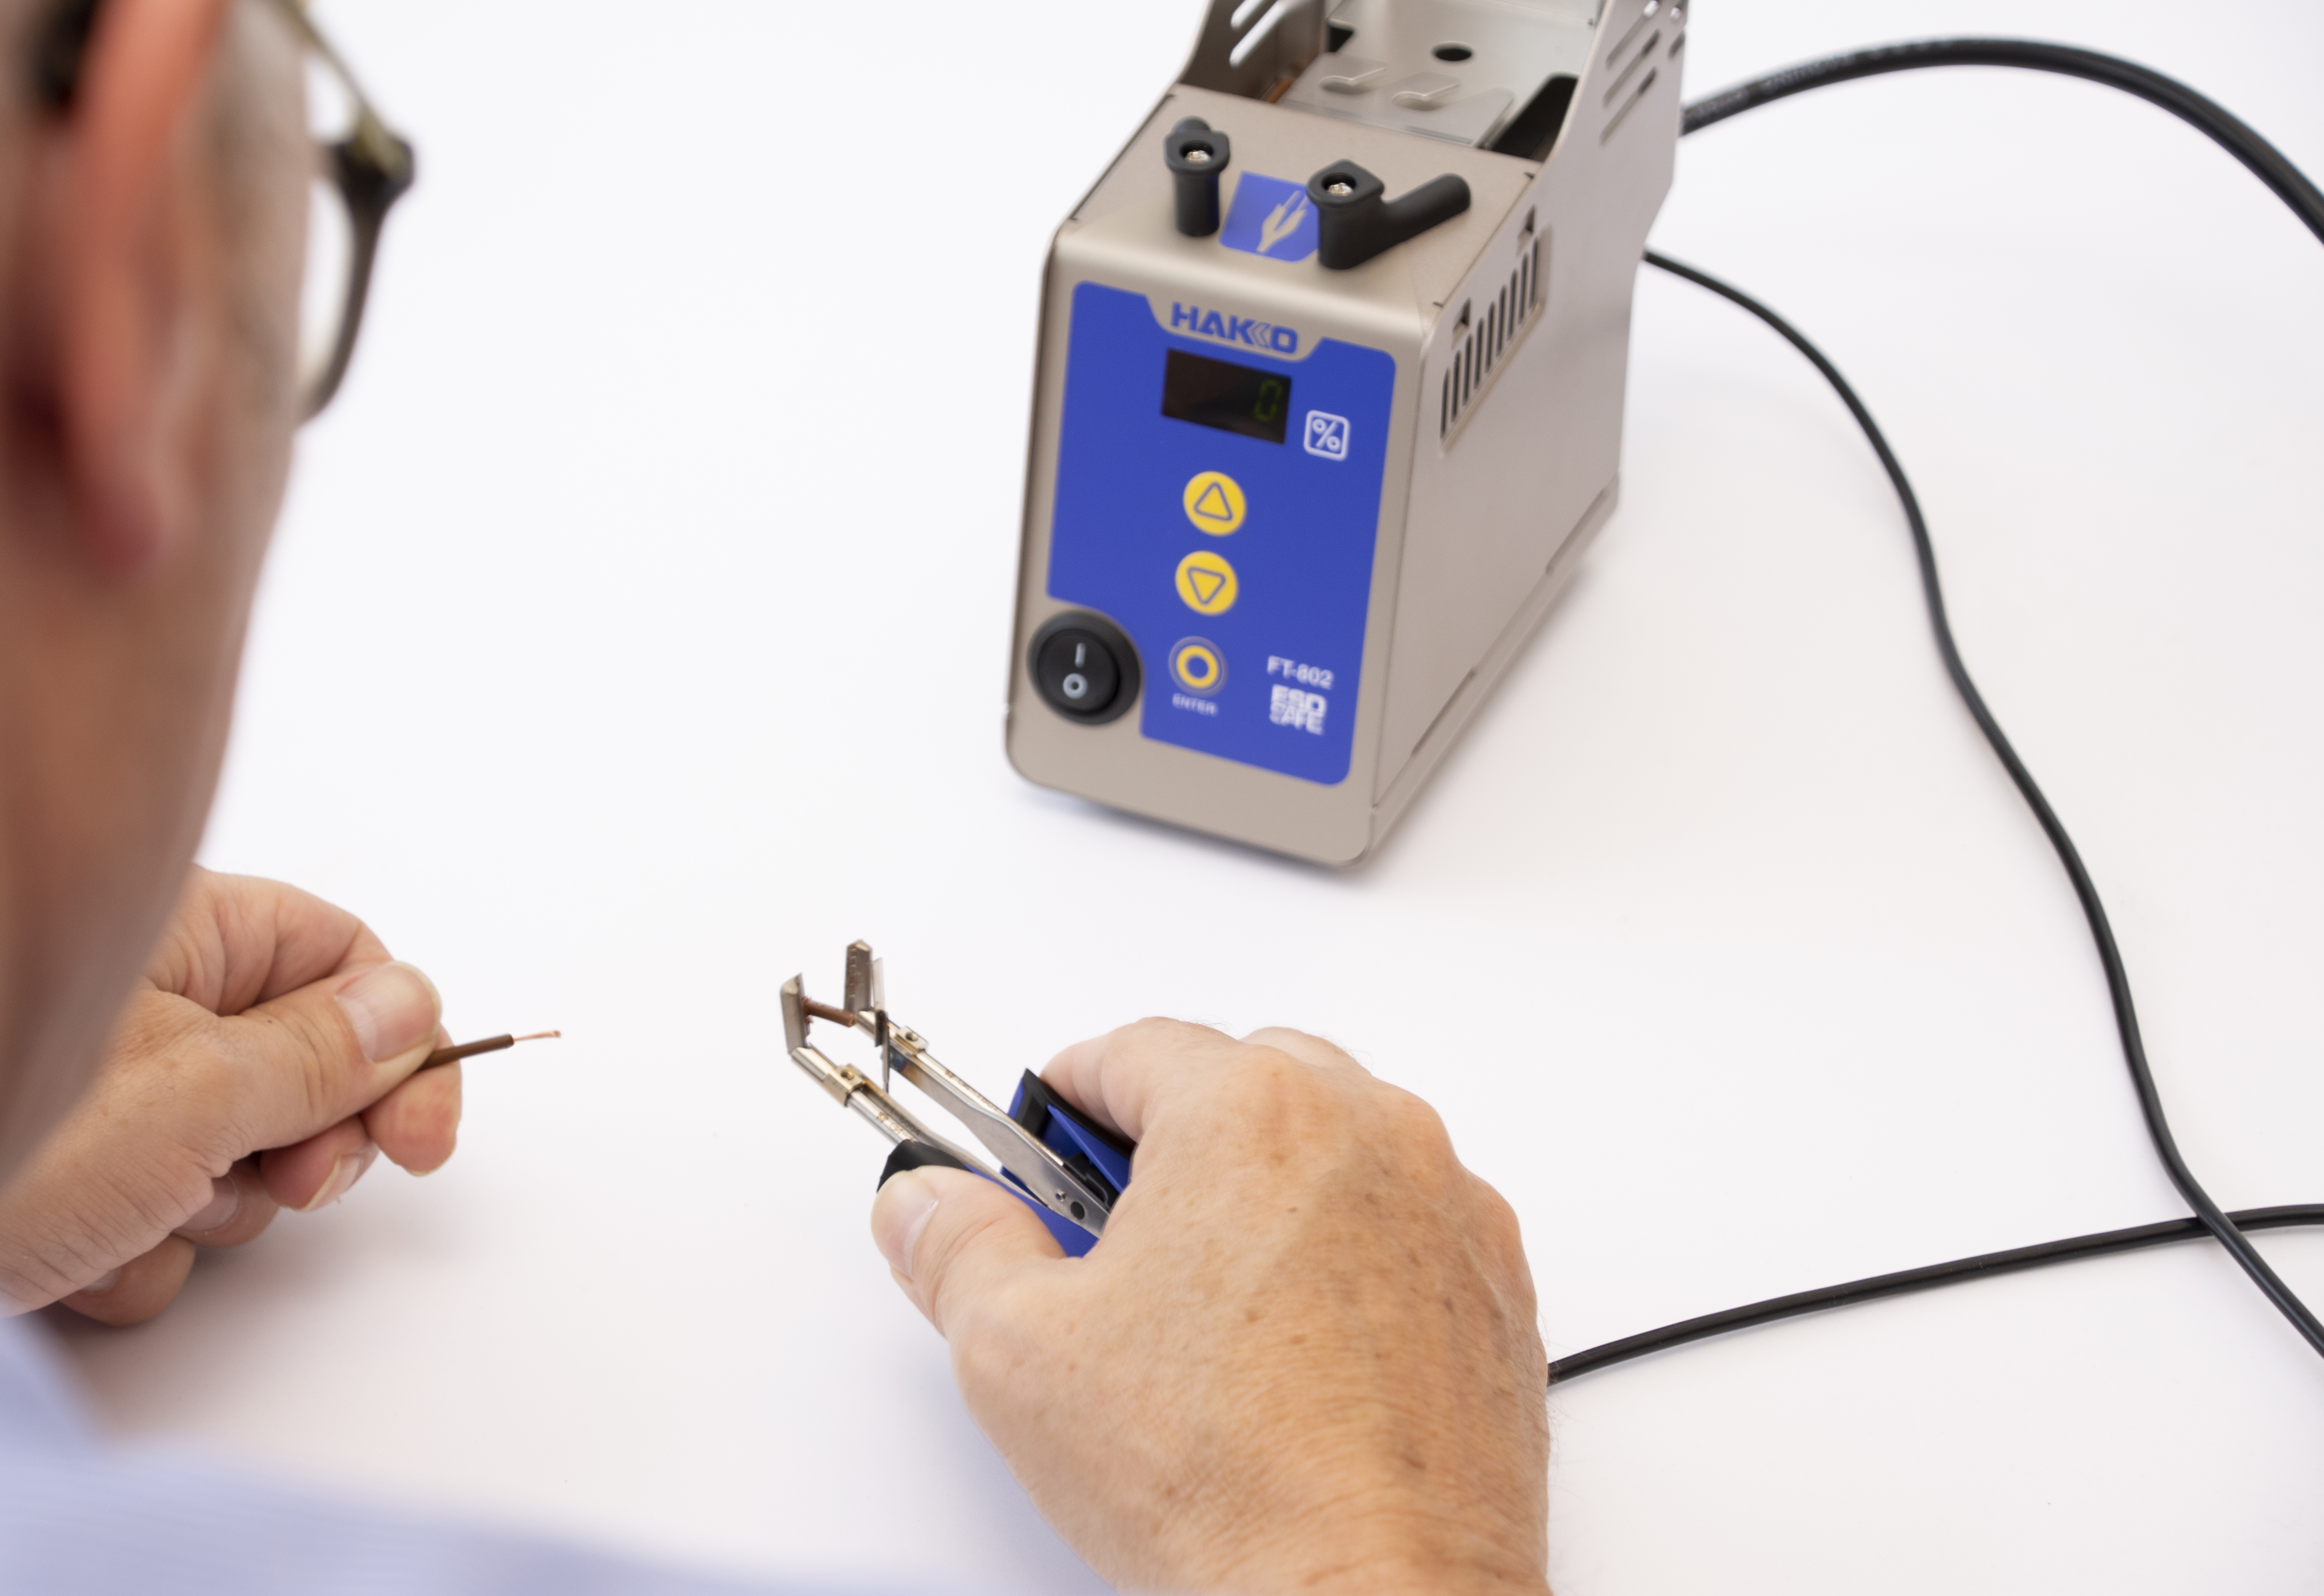 HAKKO Thermal Wire Stripper FT-802 Live Demonstrations